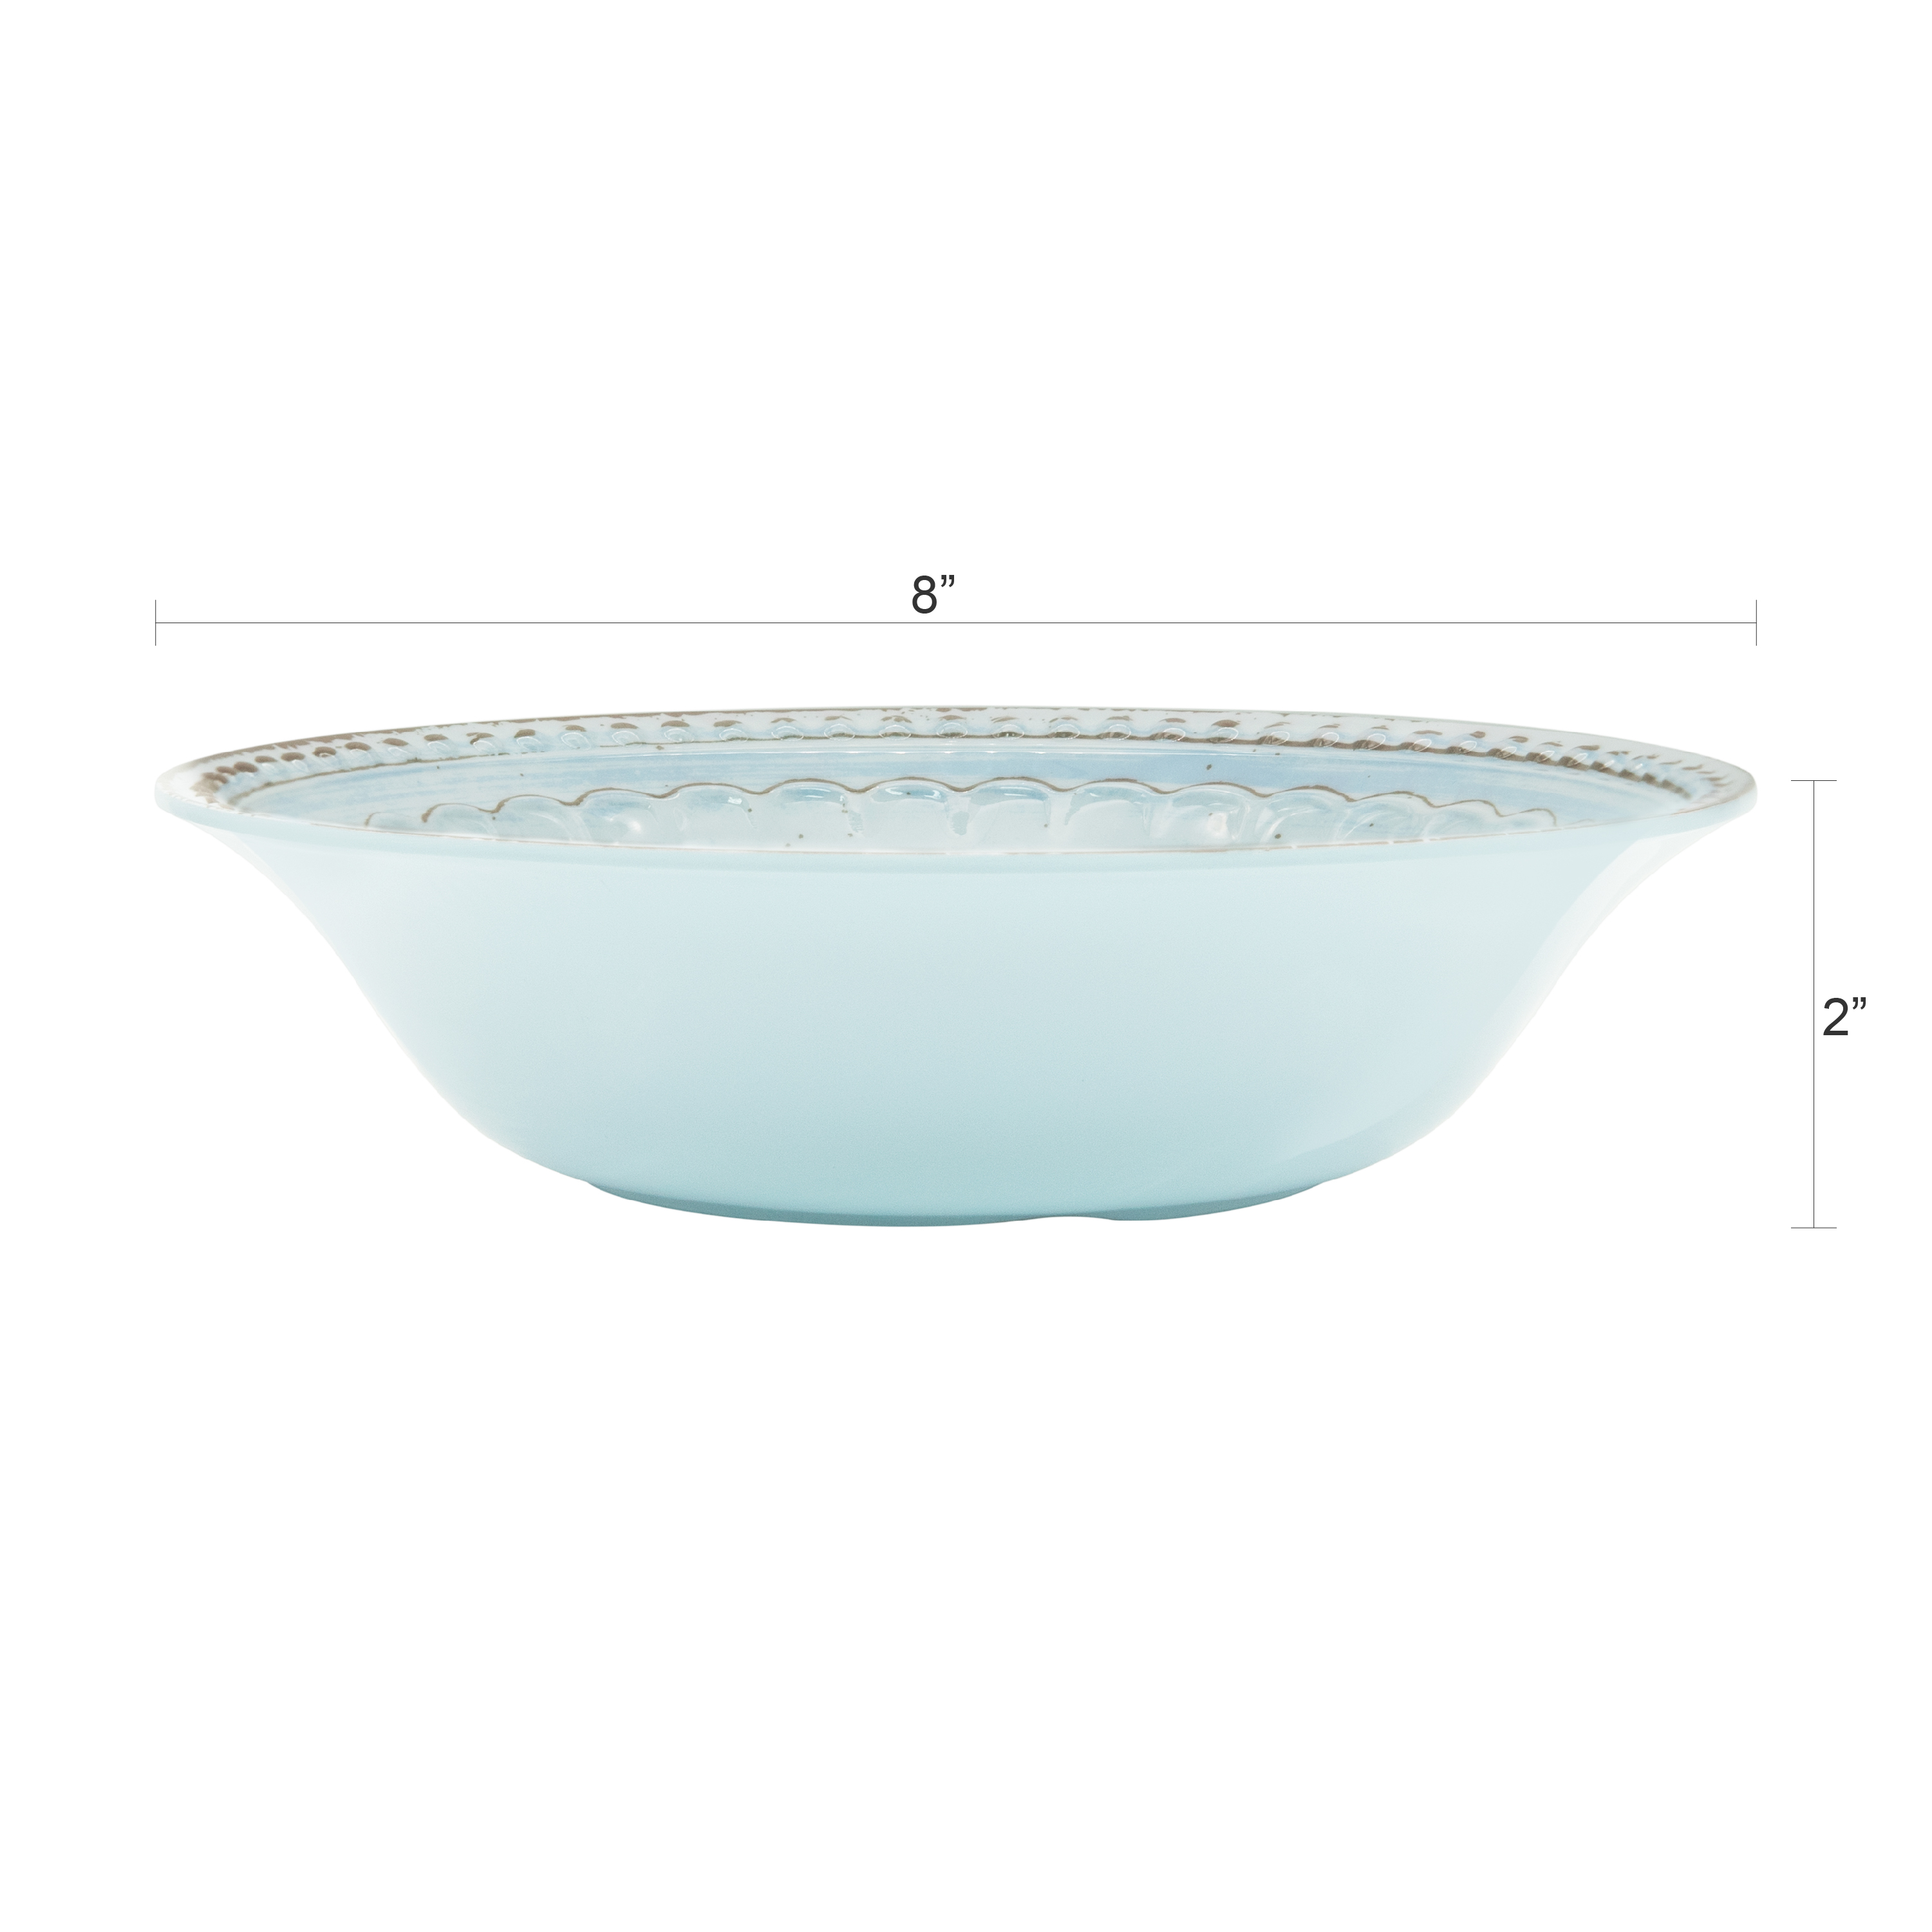 French Country Plate & Bowl Sets, Blue, 12-piece set slideshow image 7